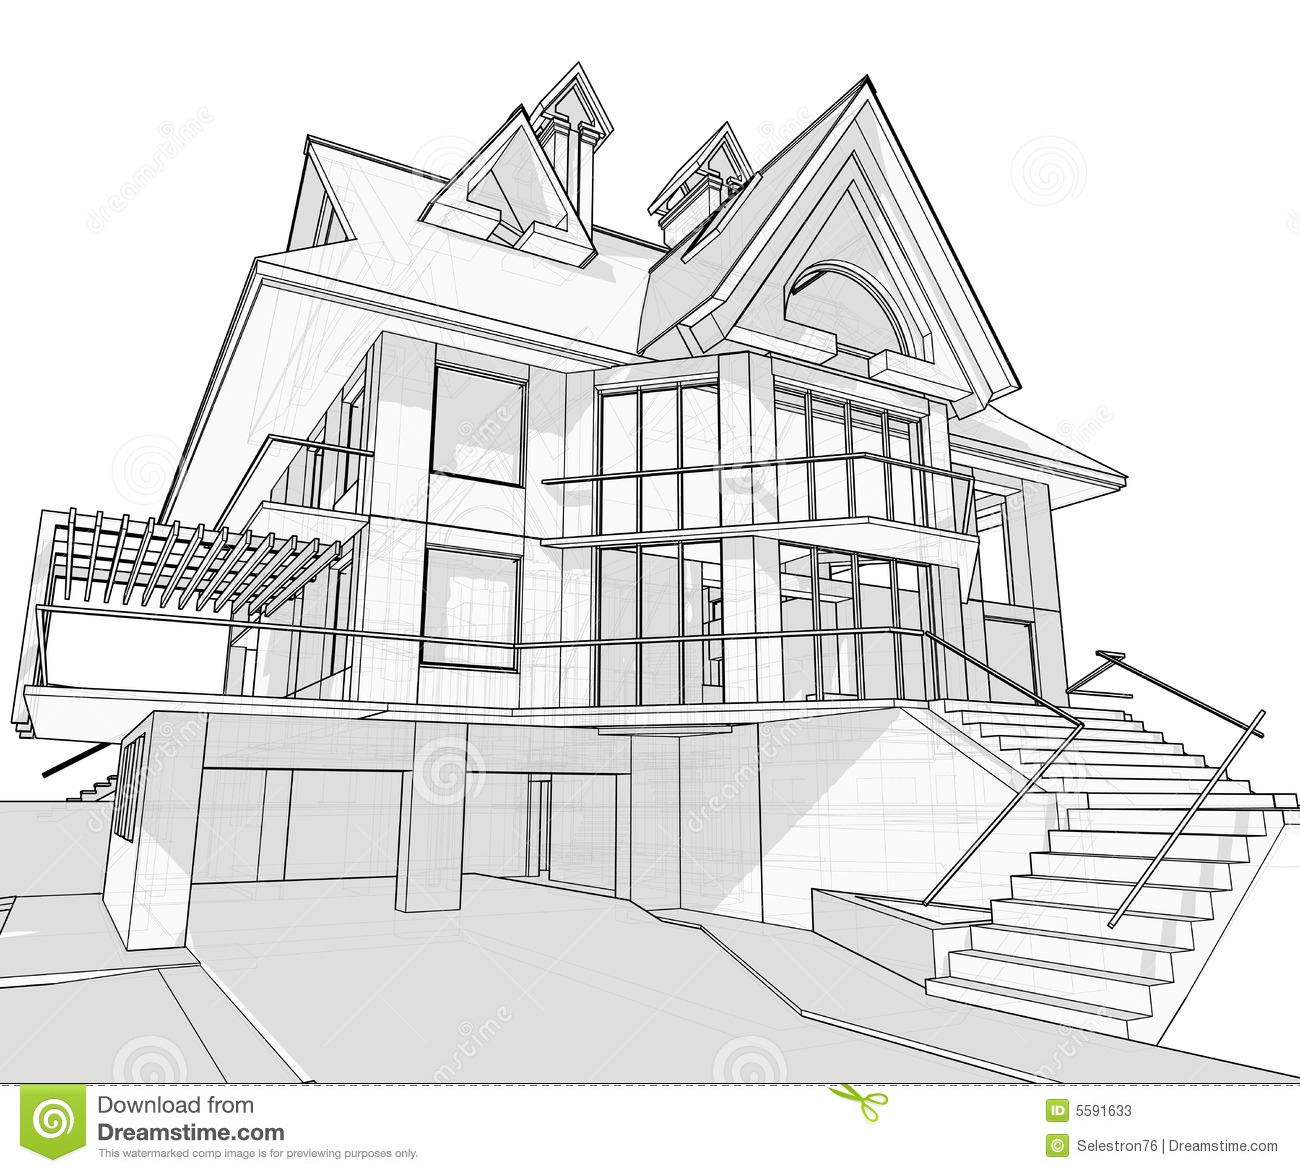 House architecture blueprint stock vector illustration of house architecture blueprint element development malvernweather Gallery